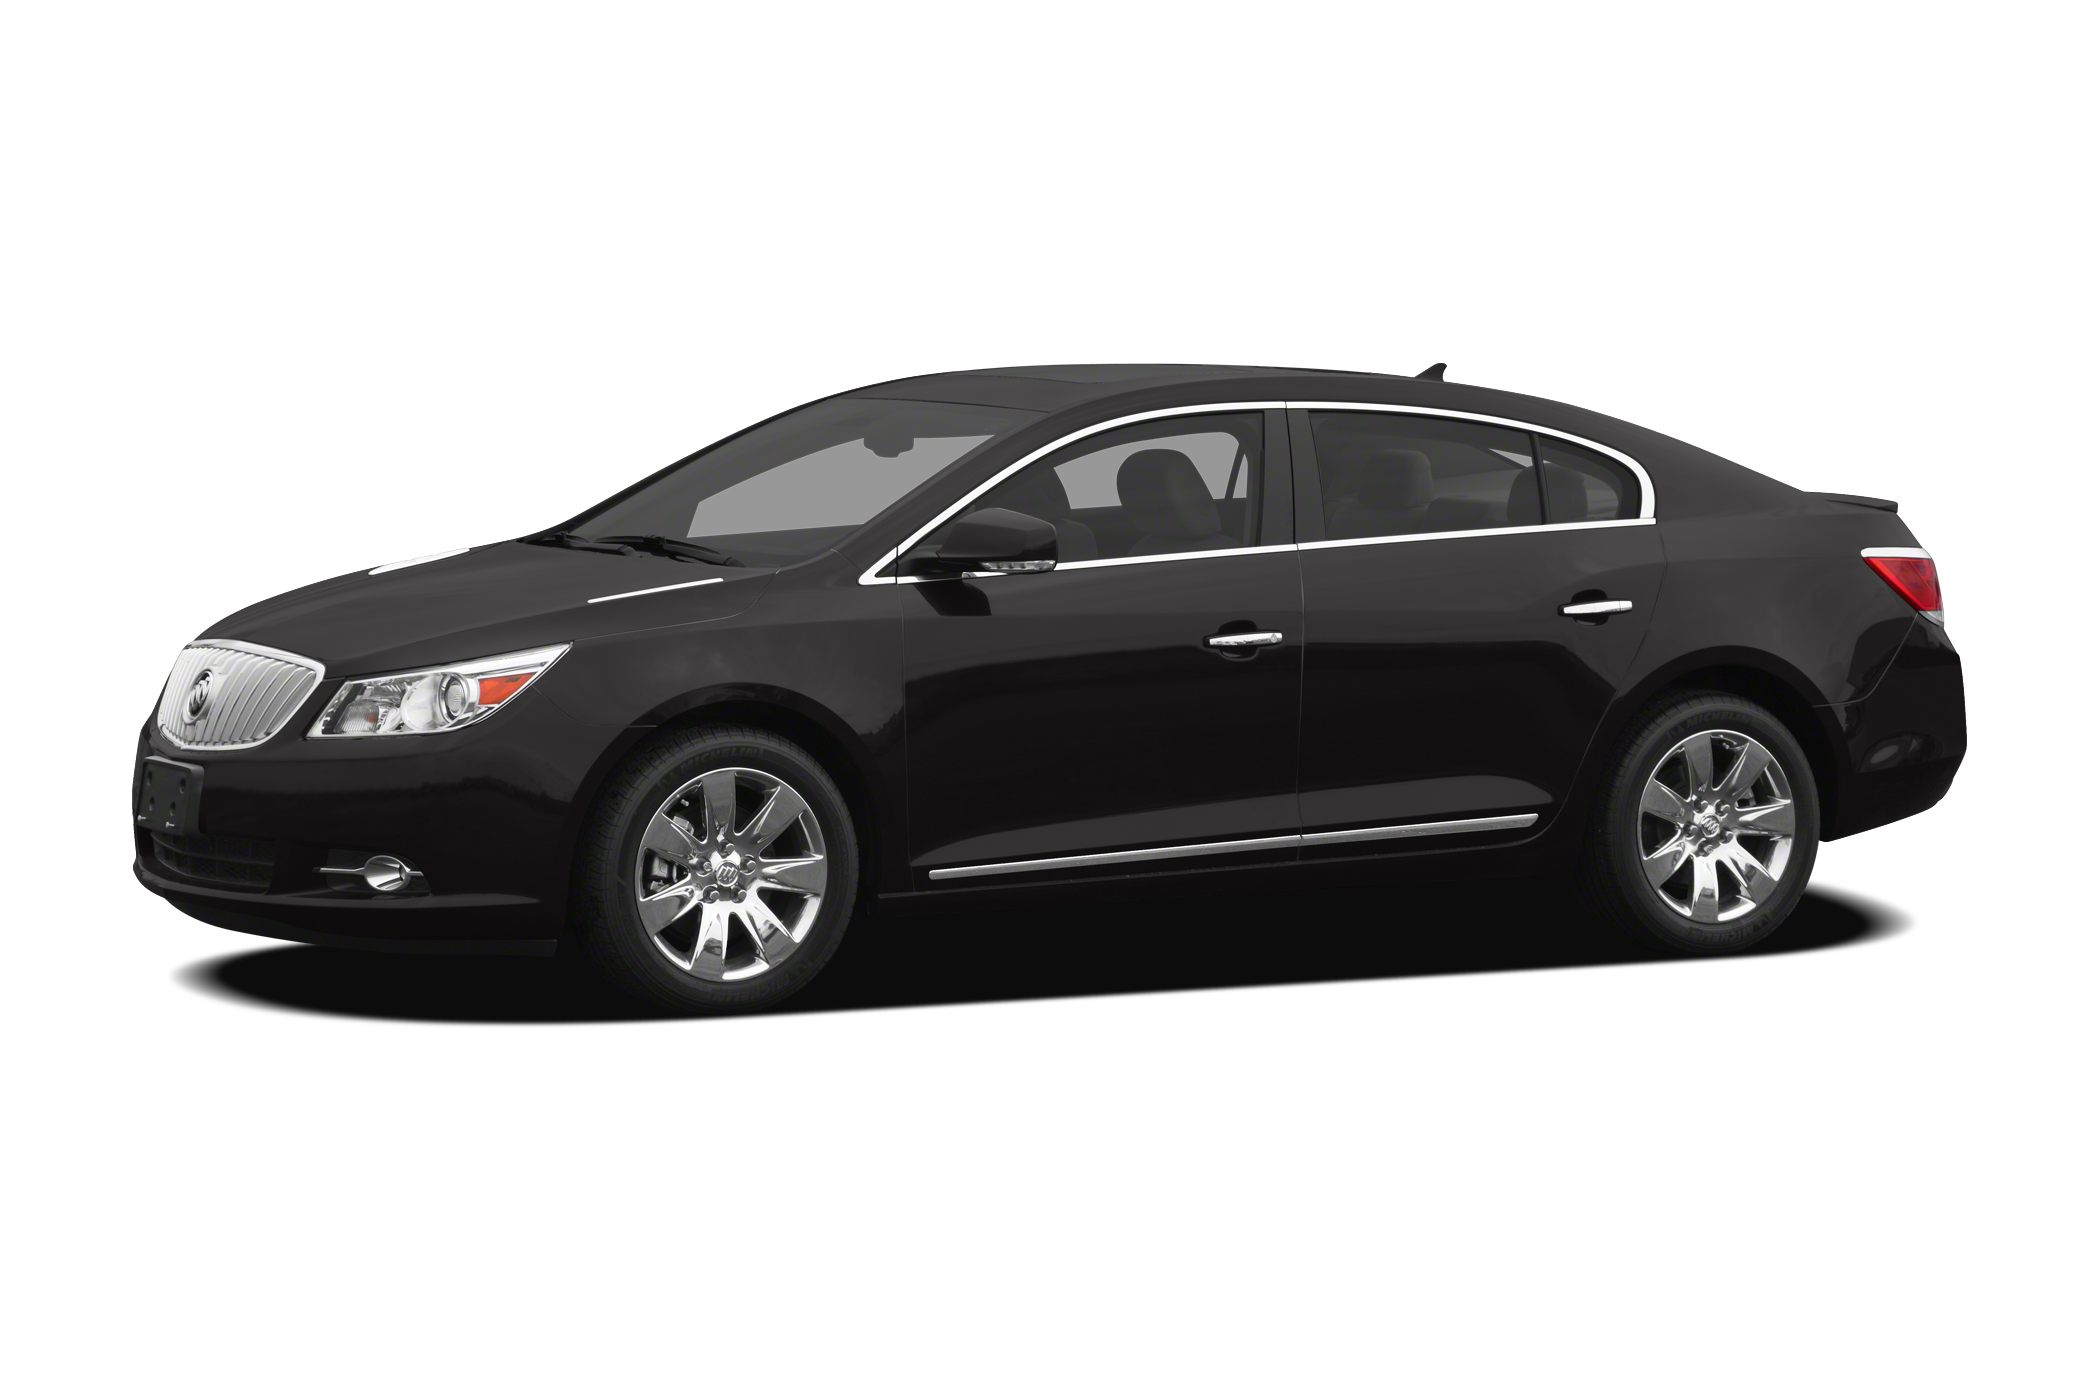 2012 Buick LaCrosse Touring Group ITS OUR 50TH ANNIVERSARY HERE AT MARTYS AND TO CELEBRATE WERE